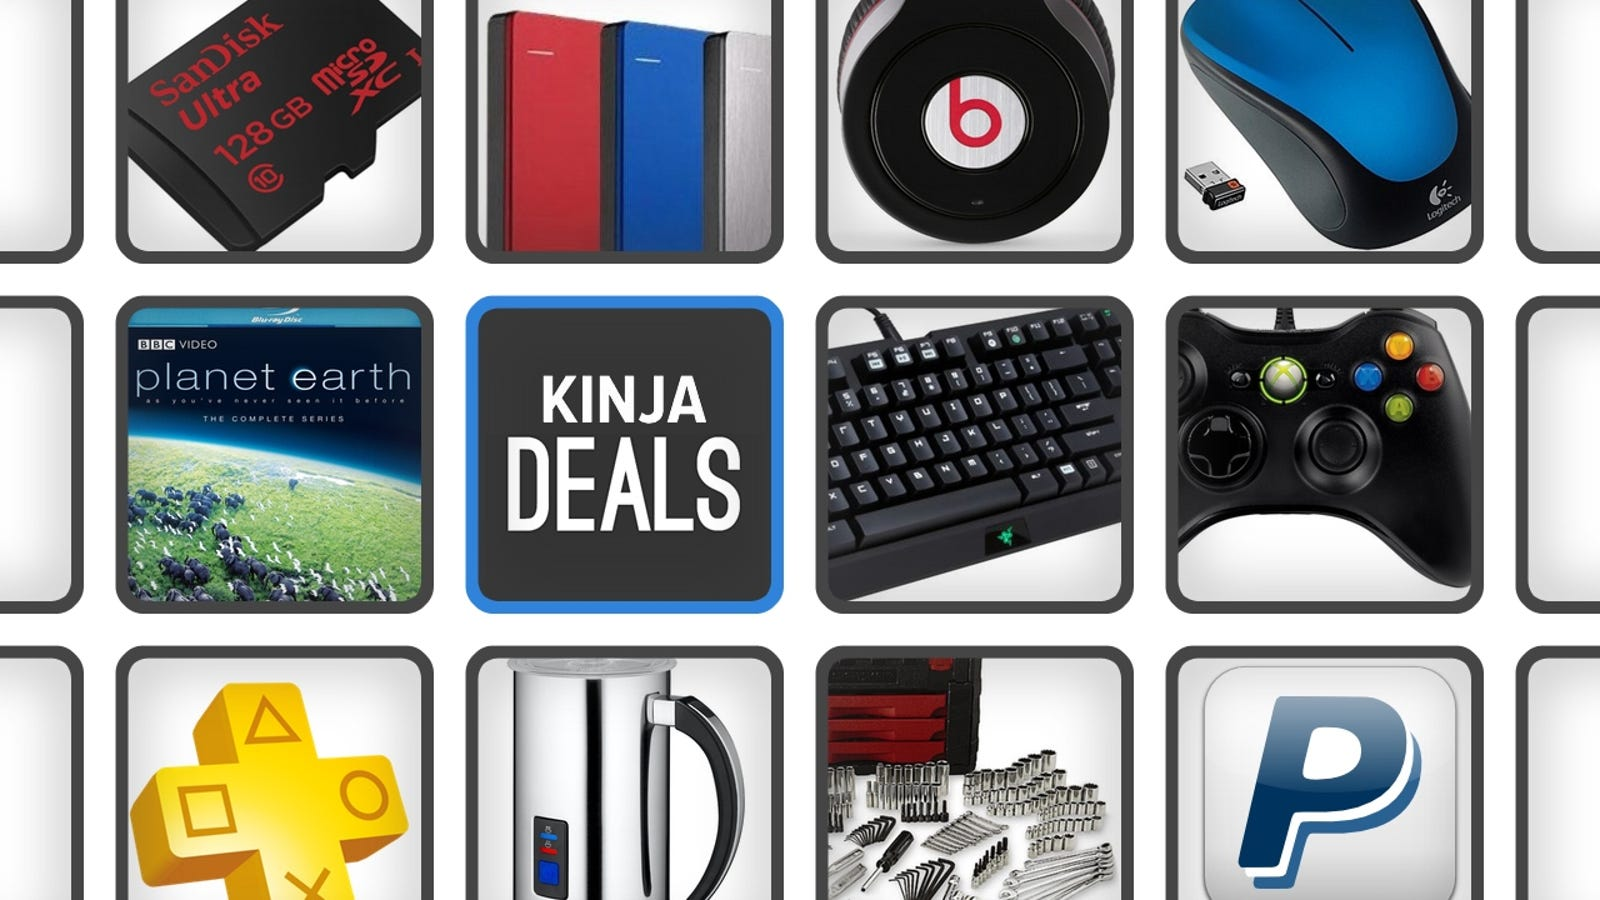 The Best Deals For September 8 2014